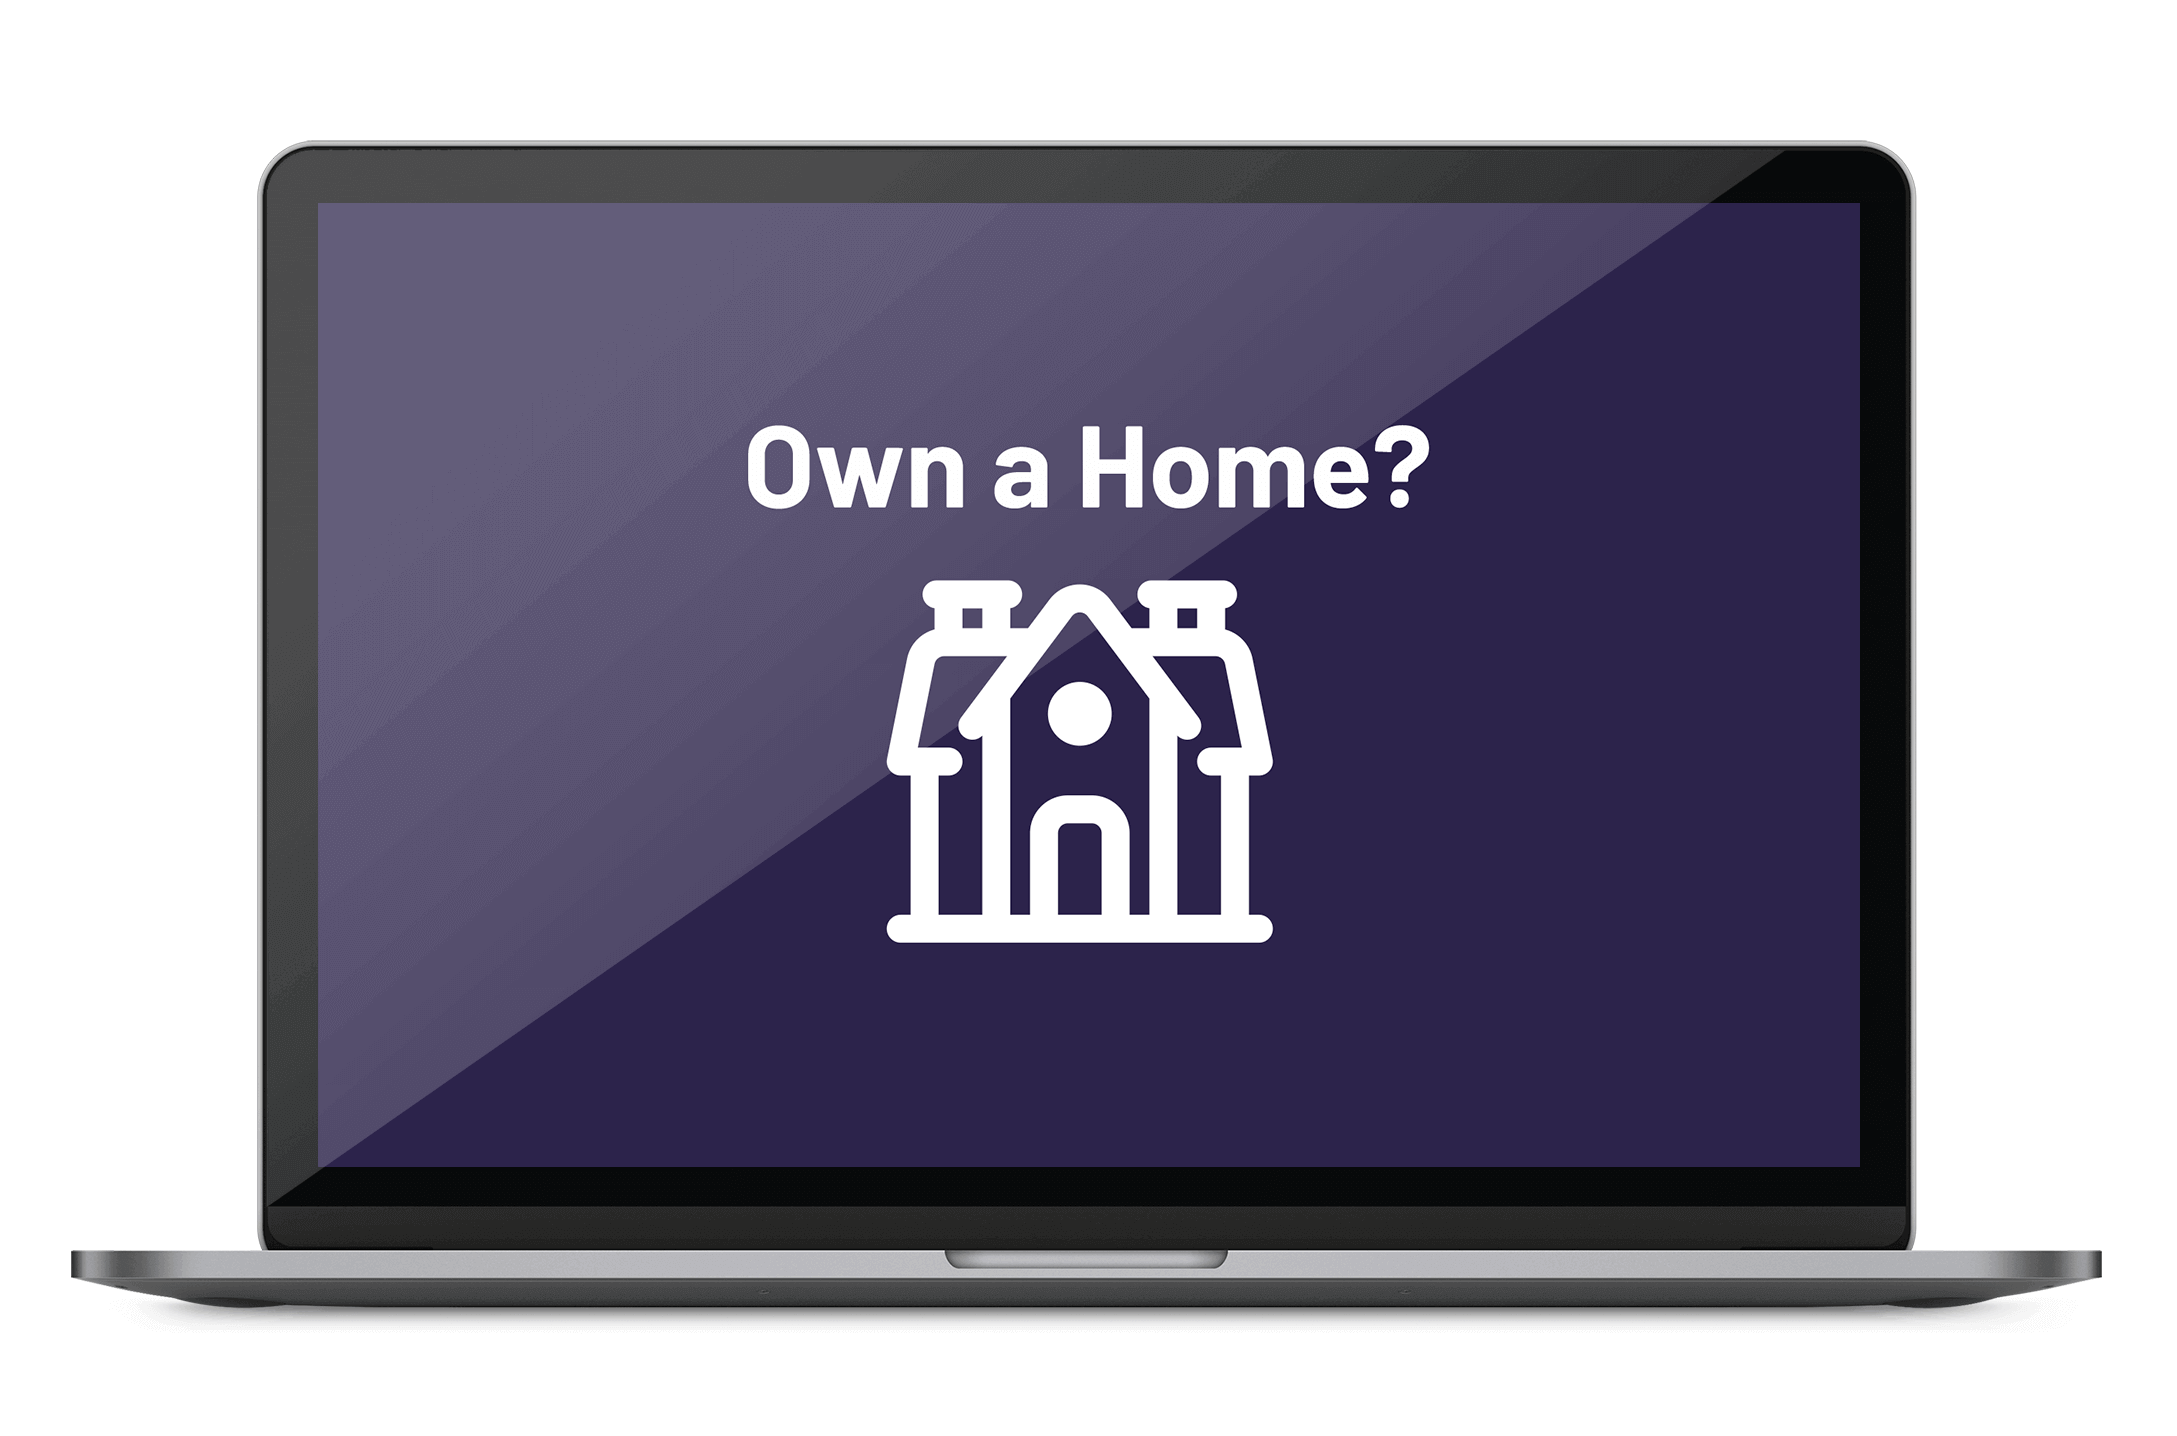 A laptop screen displaying a home icon below the text 'Own a Home?'